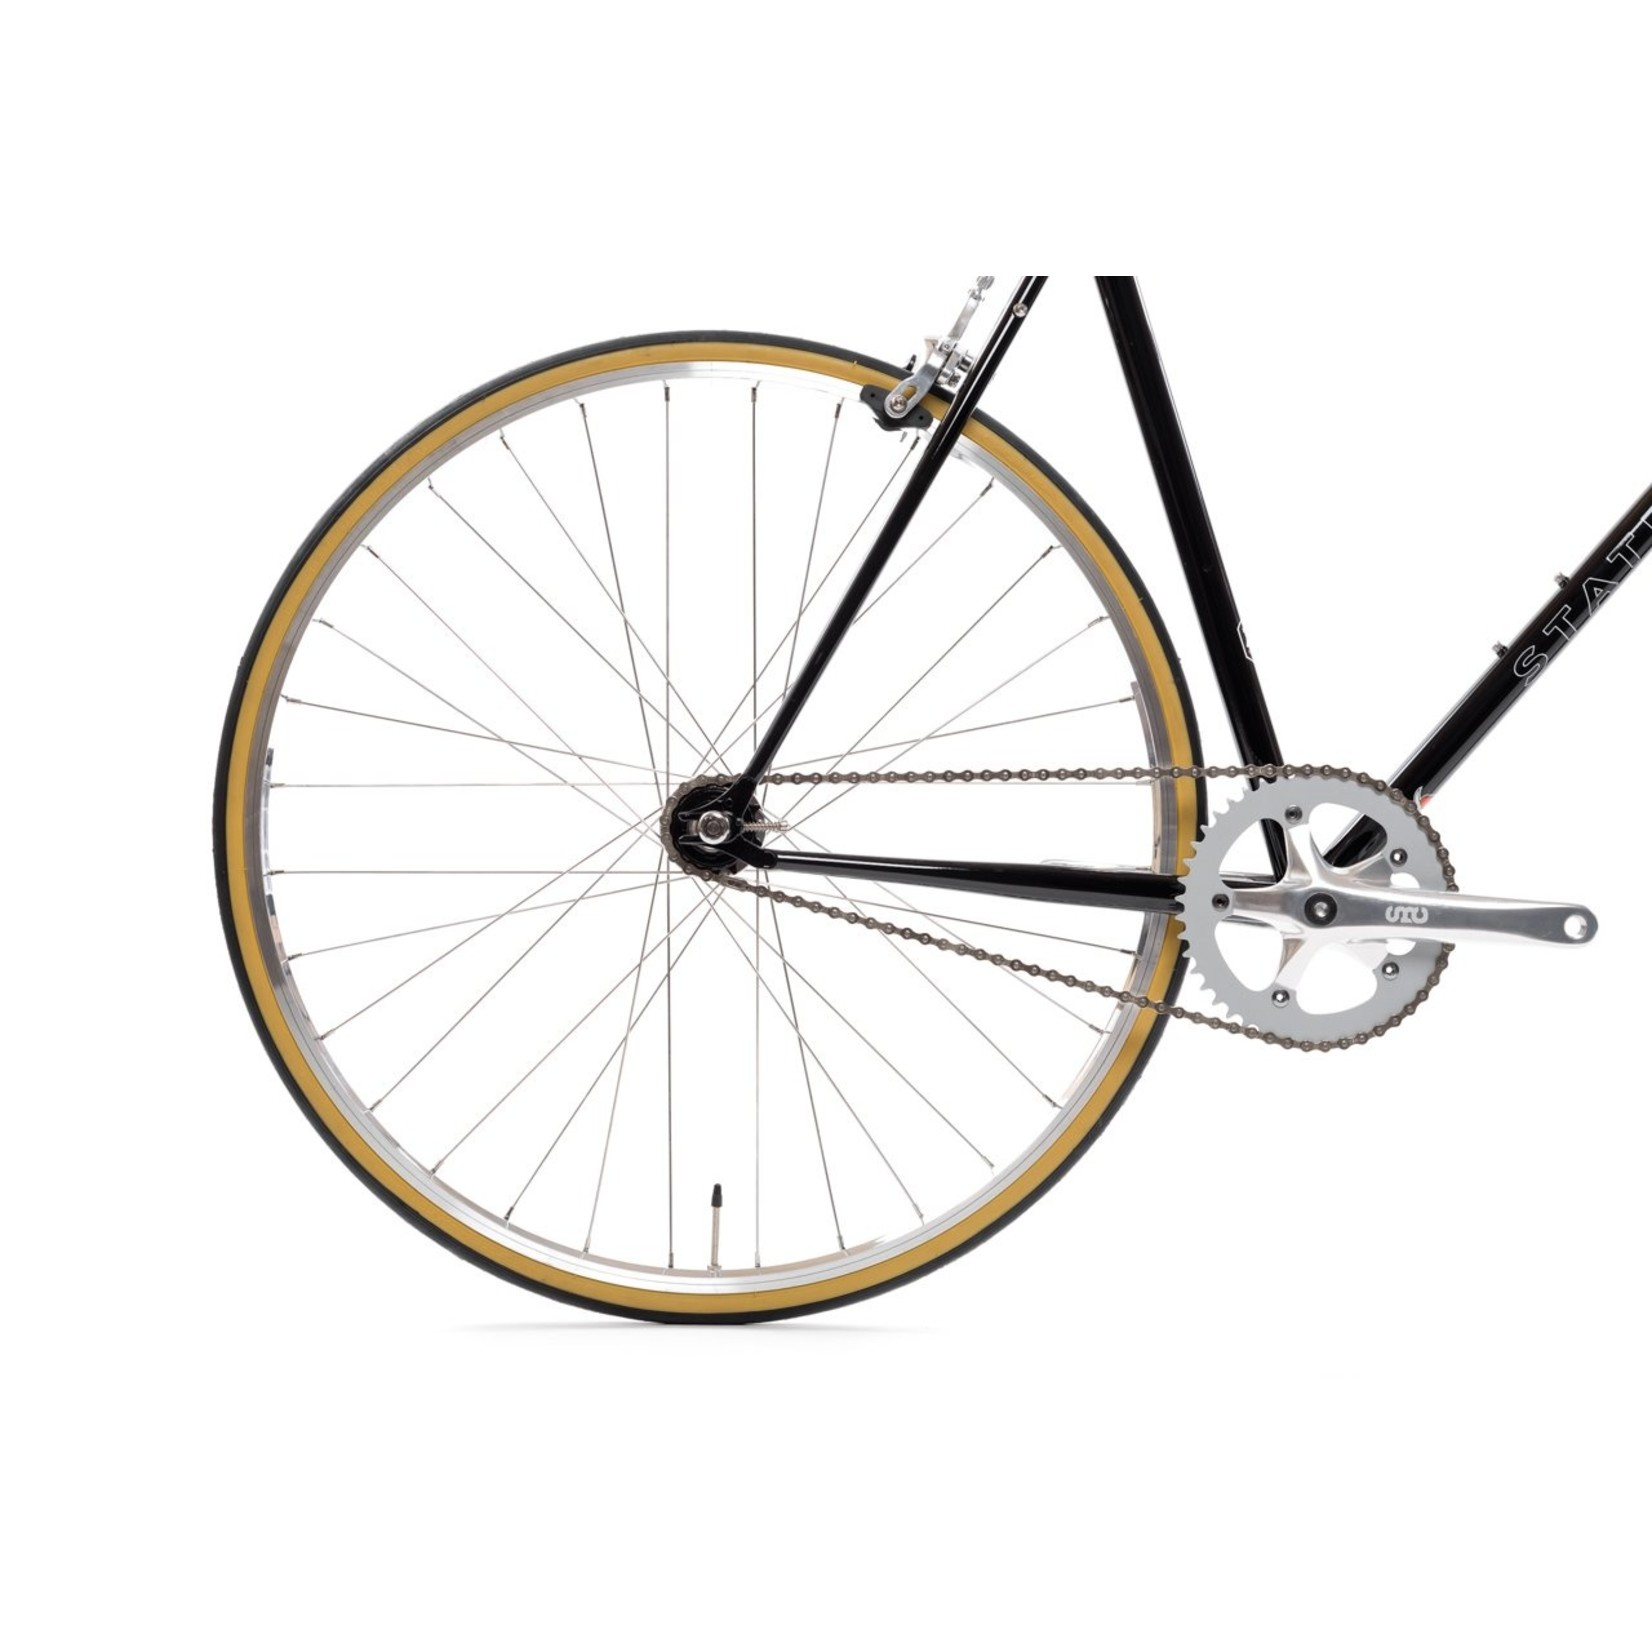 State Bicycle Co. 4130 Van Damme Single Speed/Fixed